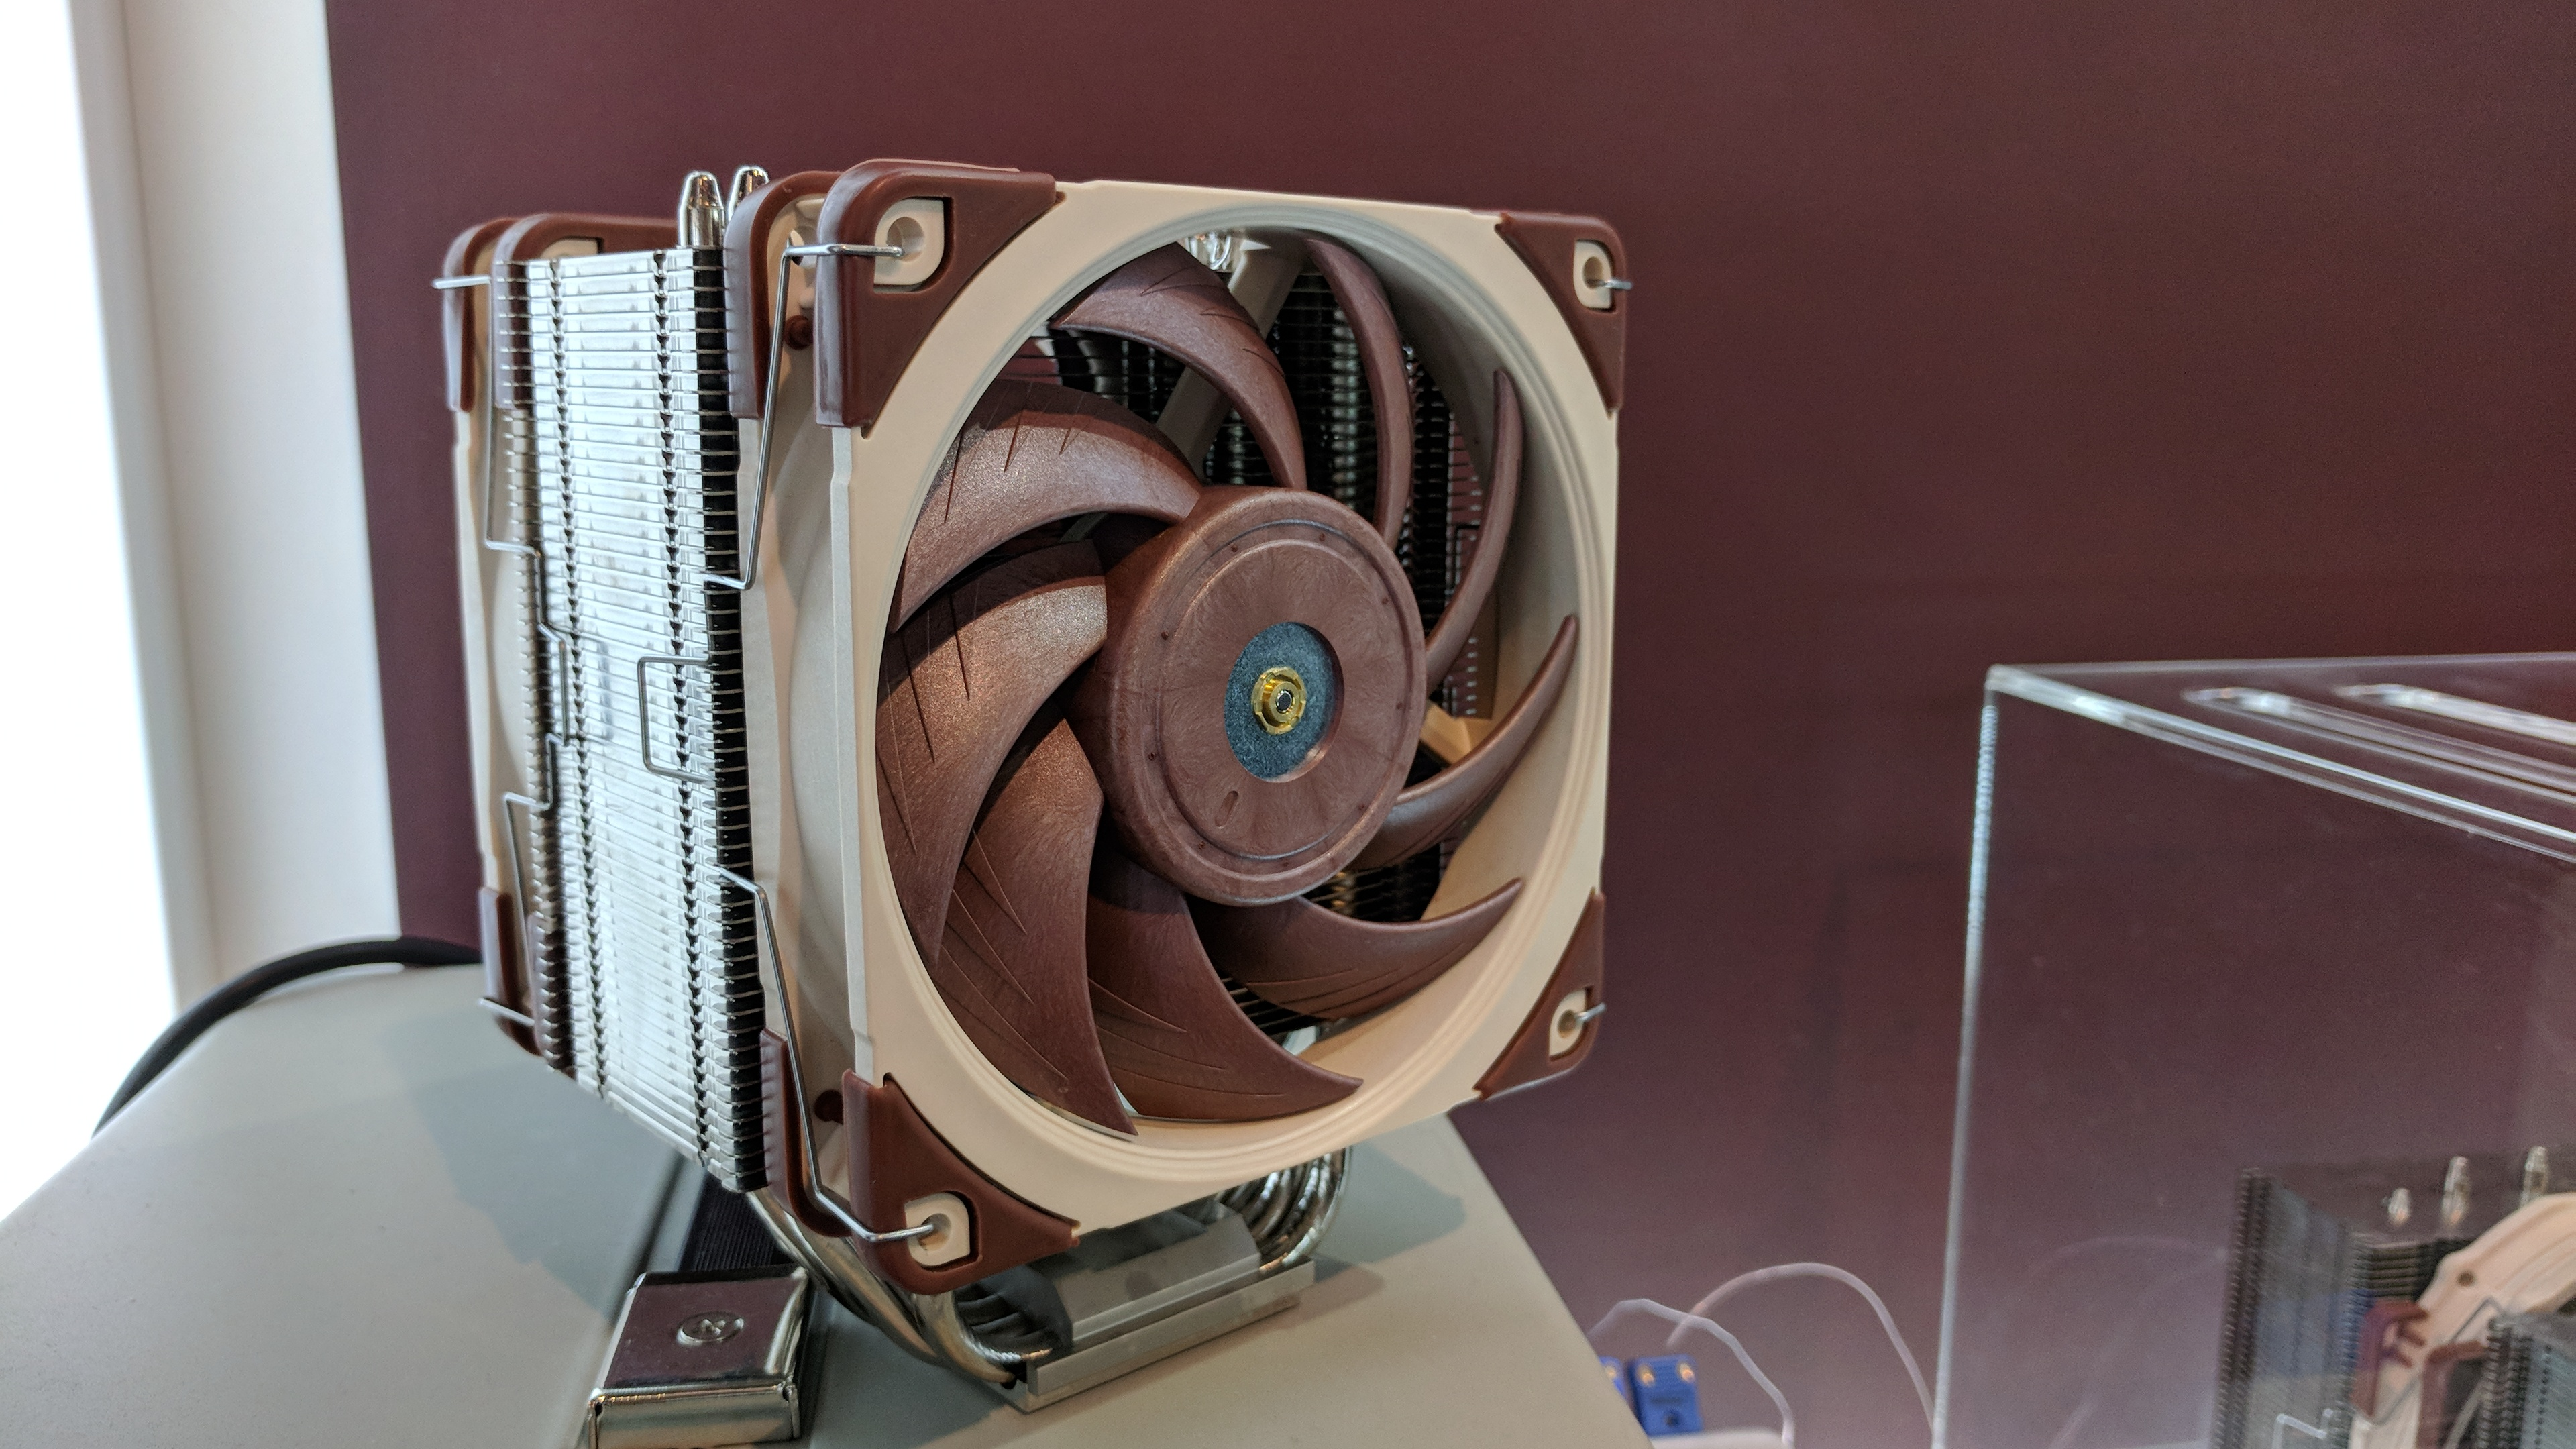 Noctua was the only hardware company at Computex totally